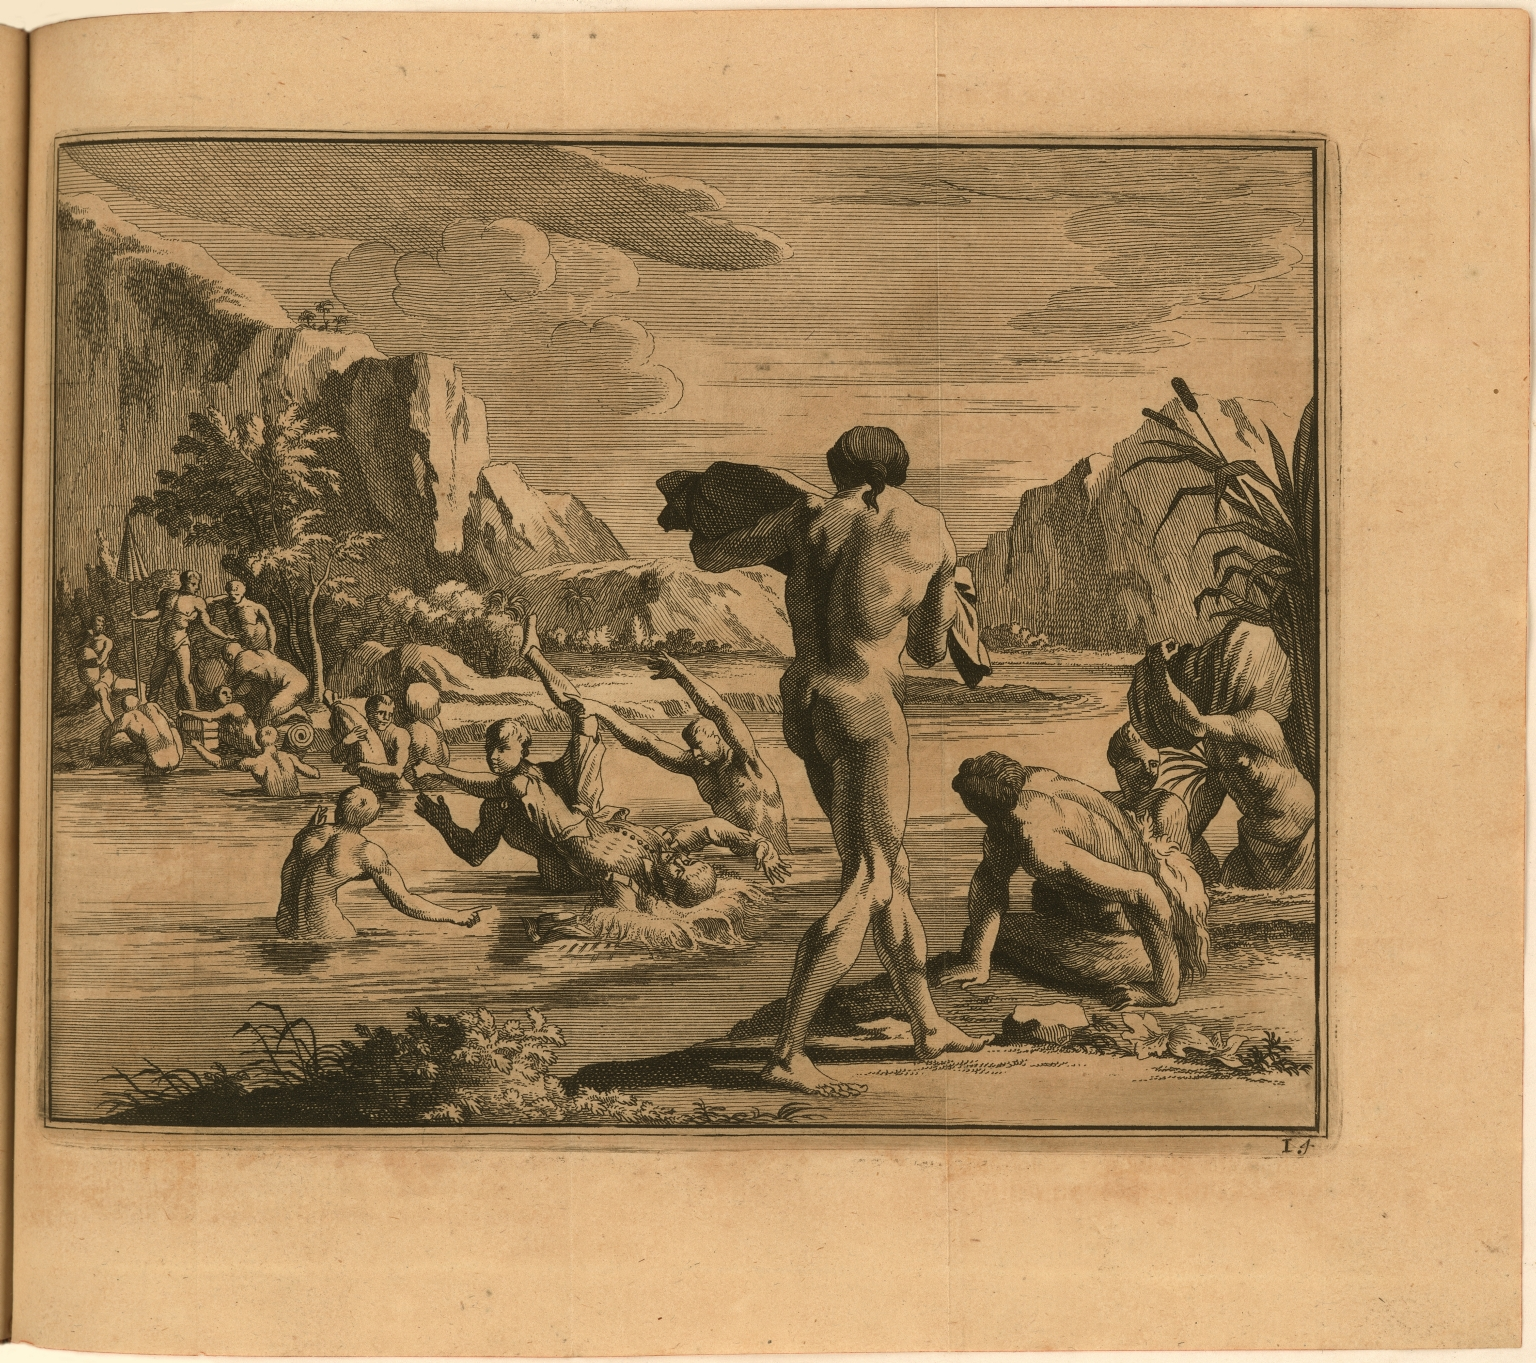 [Spanish soldier falls into a river while native Americans watch]